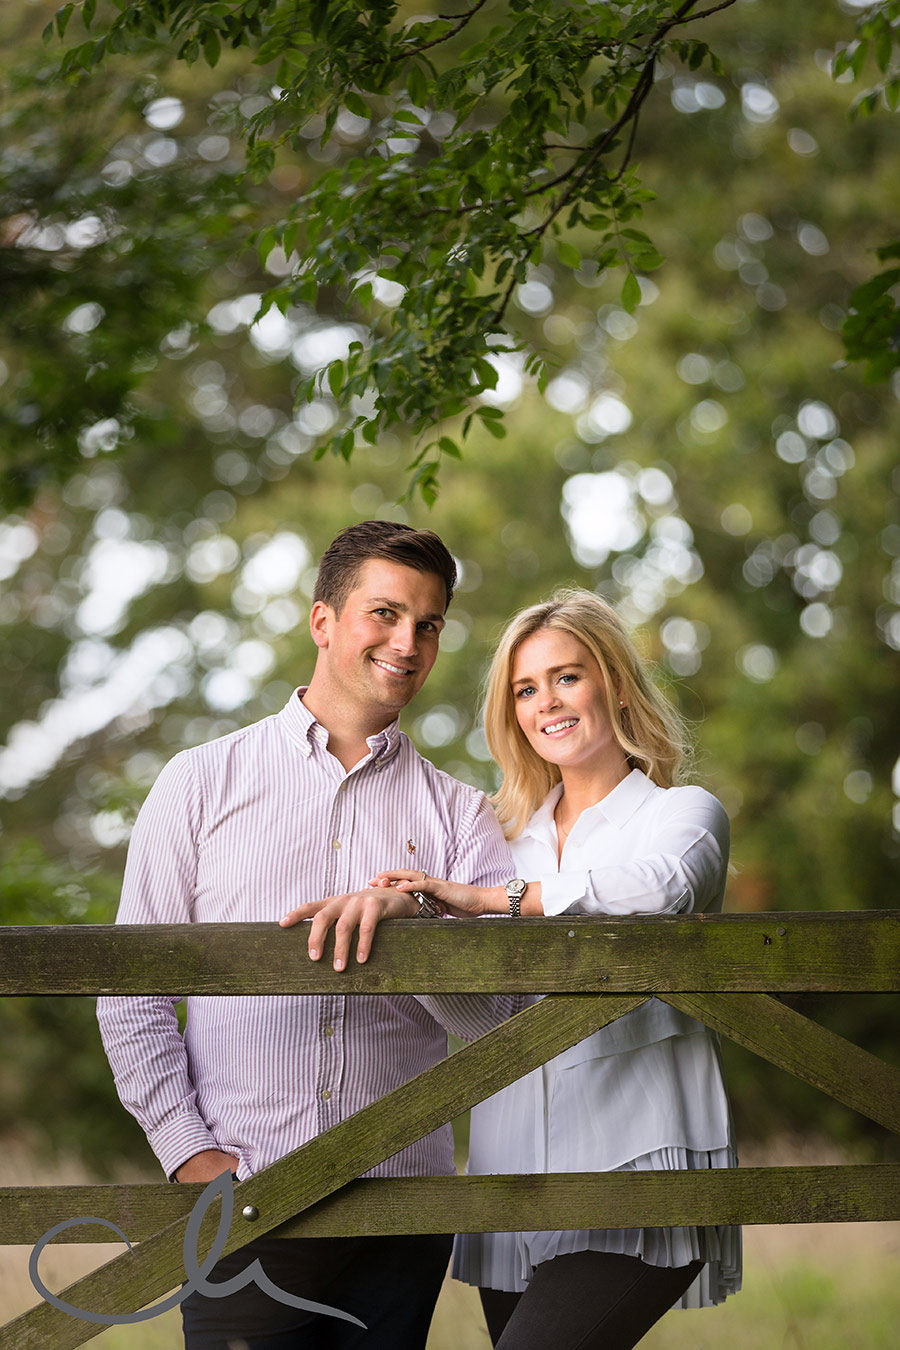 Tom-&-Anastasia's-Canterbury-Engagement-Shoot-13